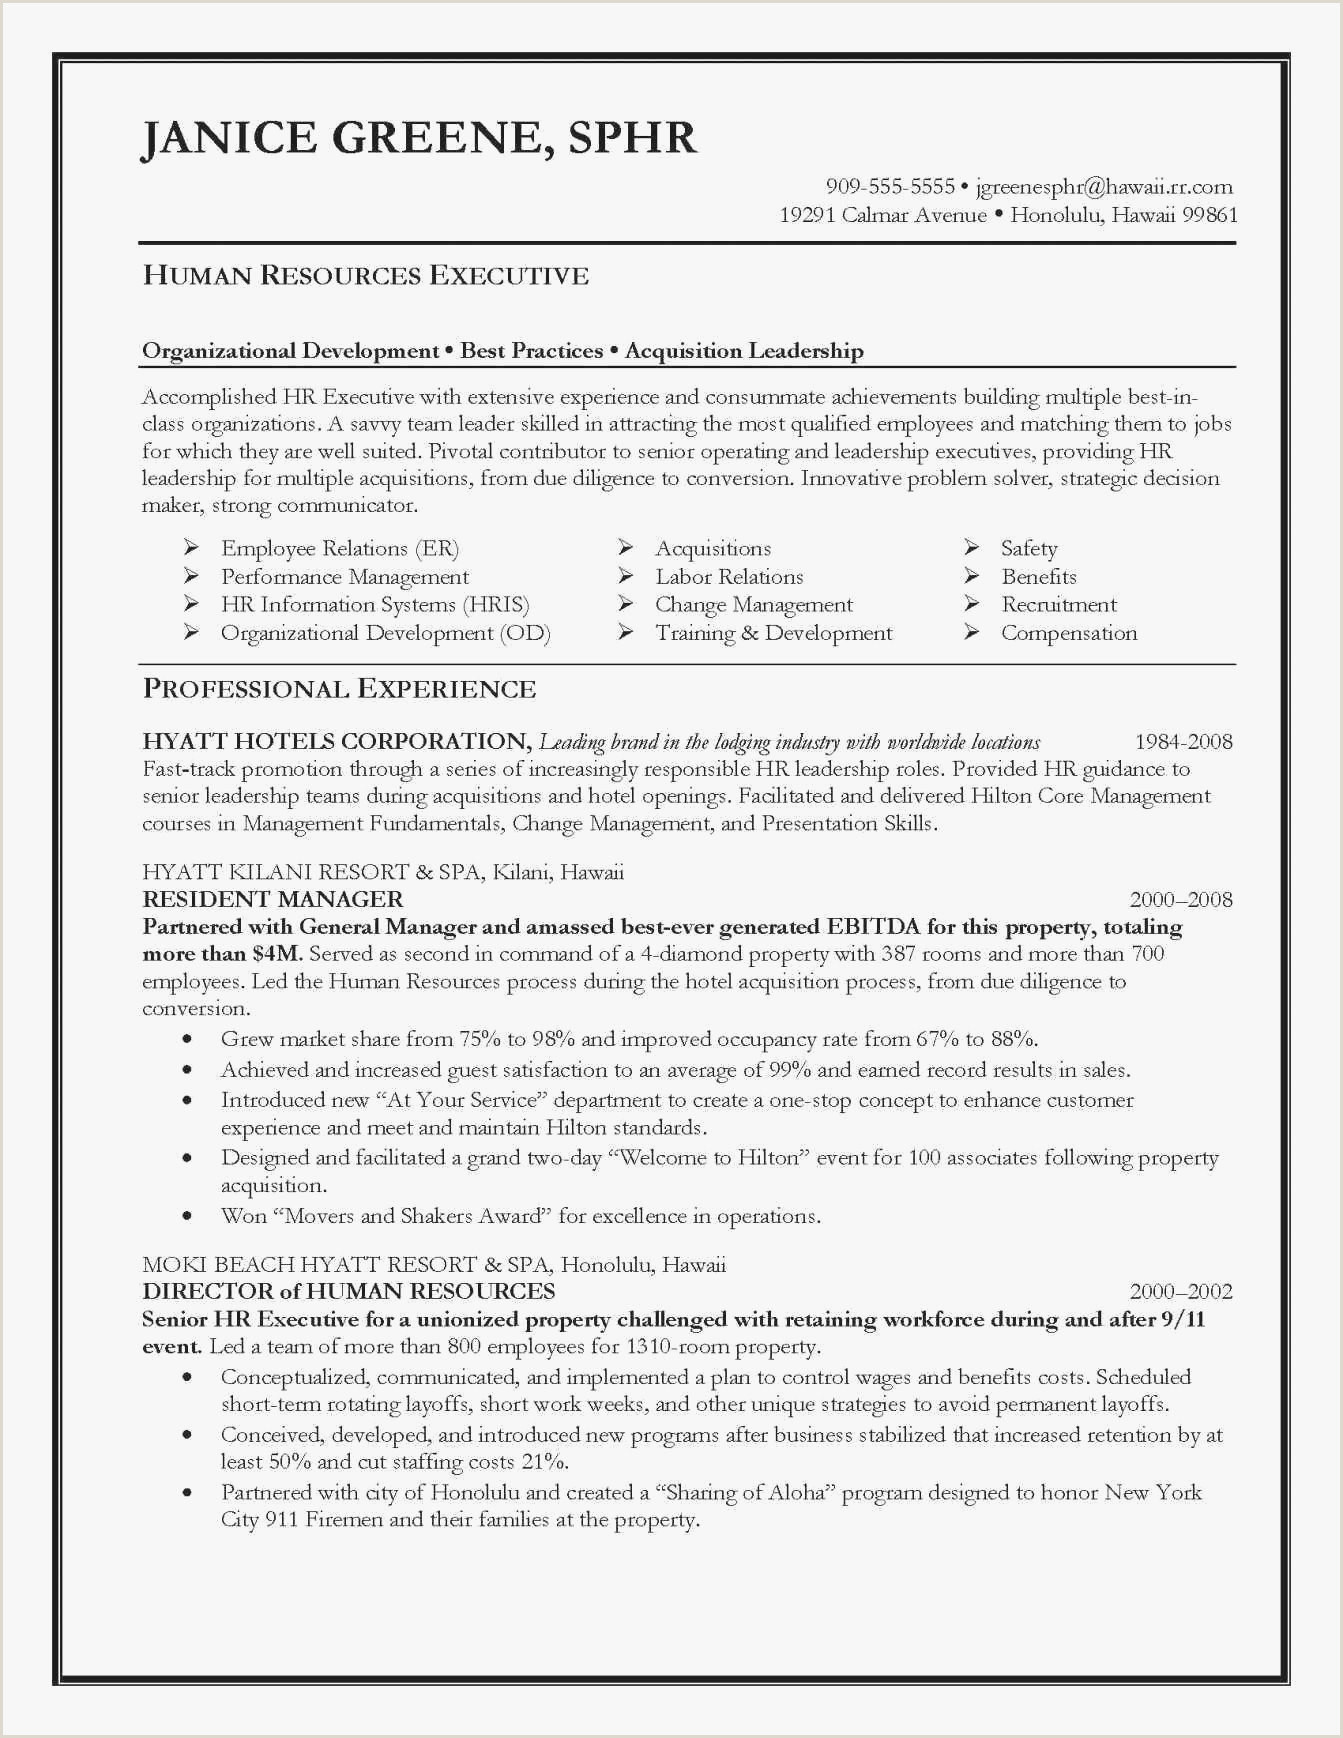 Student Resume Samples Professional Required Classes to